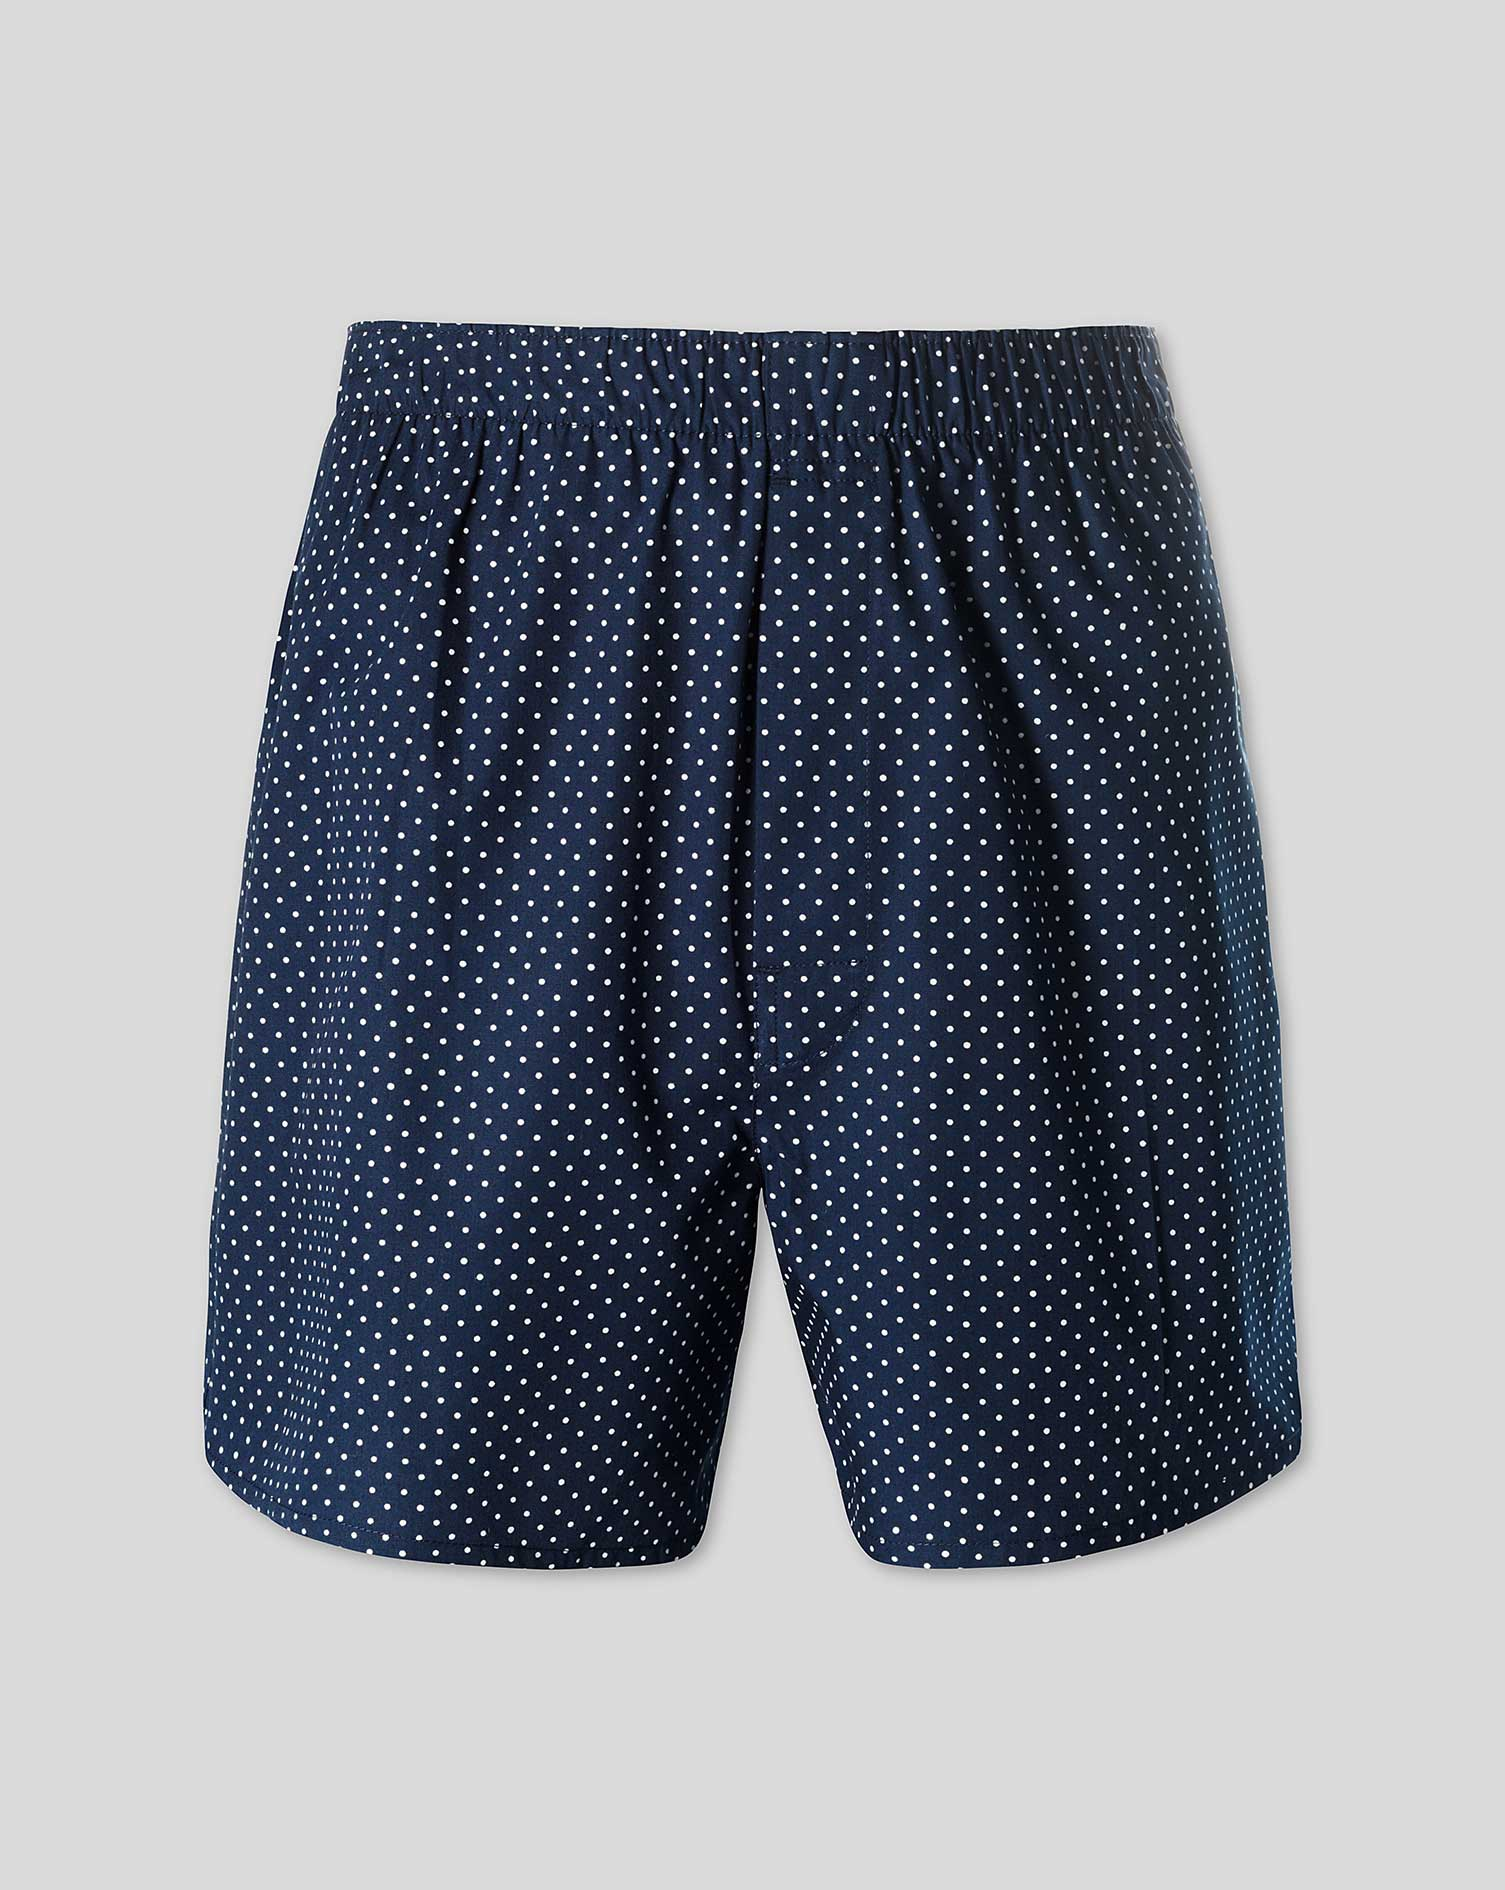 Navy Printed Dot Woven Boxers Size XXL by Charles Tyrwhitt